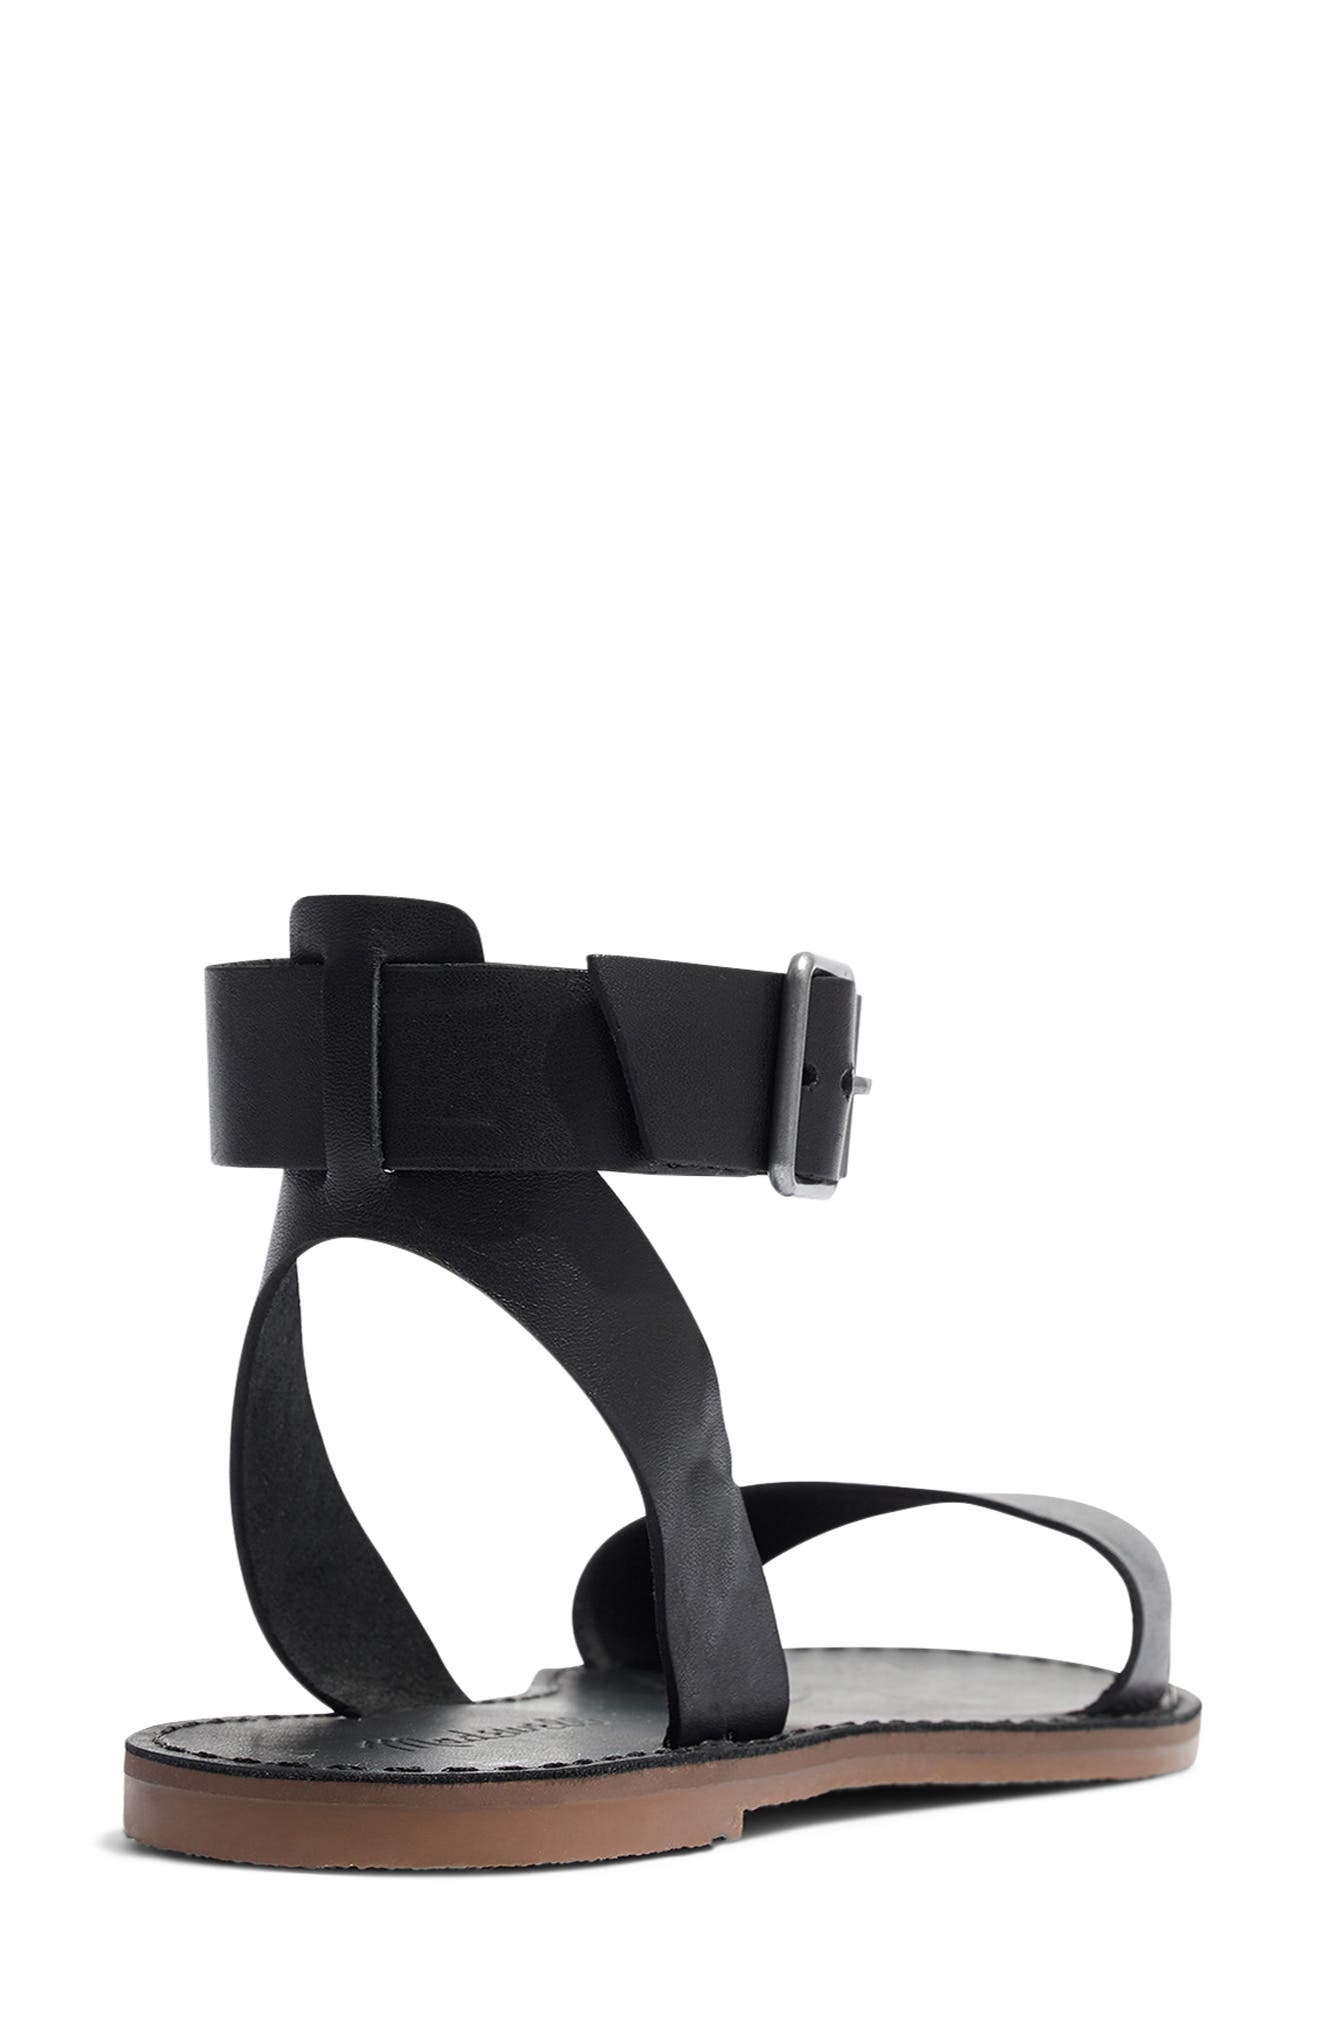 MADEWELL, The Boardwalk Ankle Strap Sandal, Alternate thumbnail 2, color, TRUE BLACK LEATHER